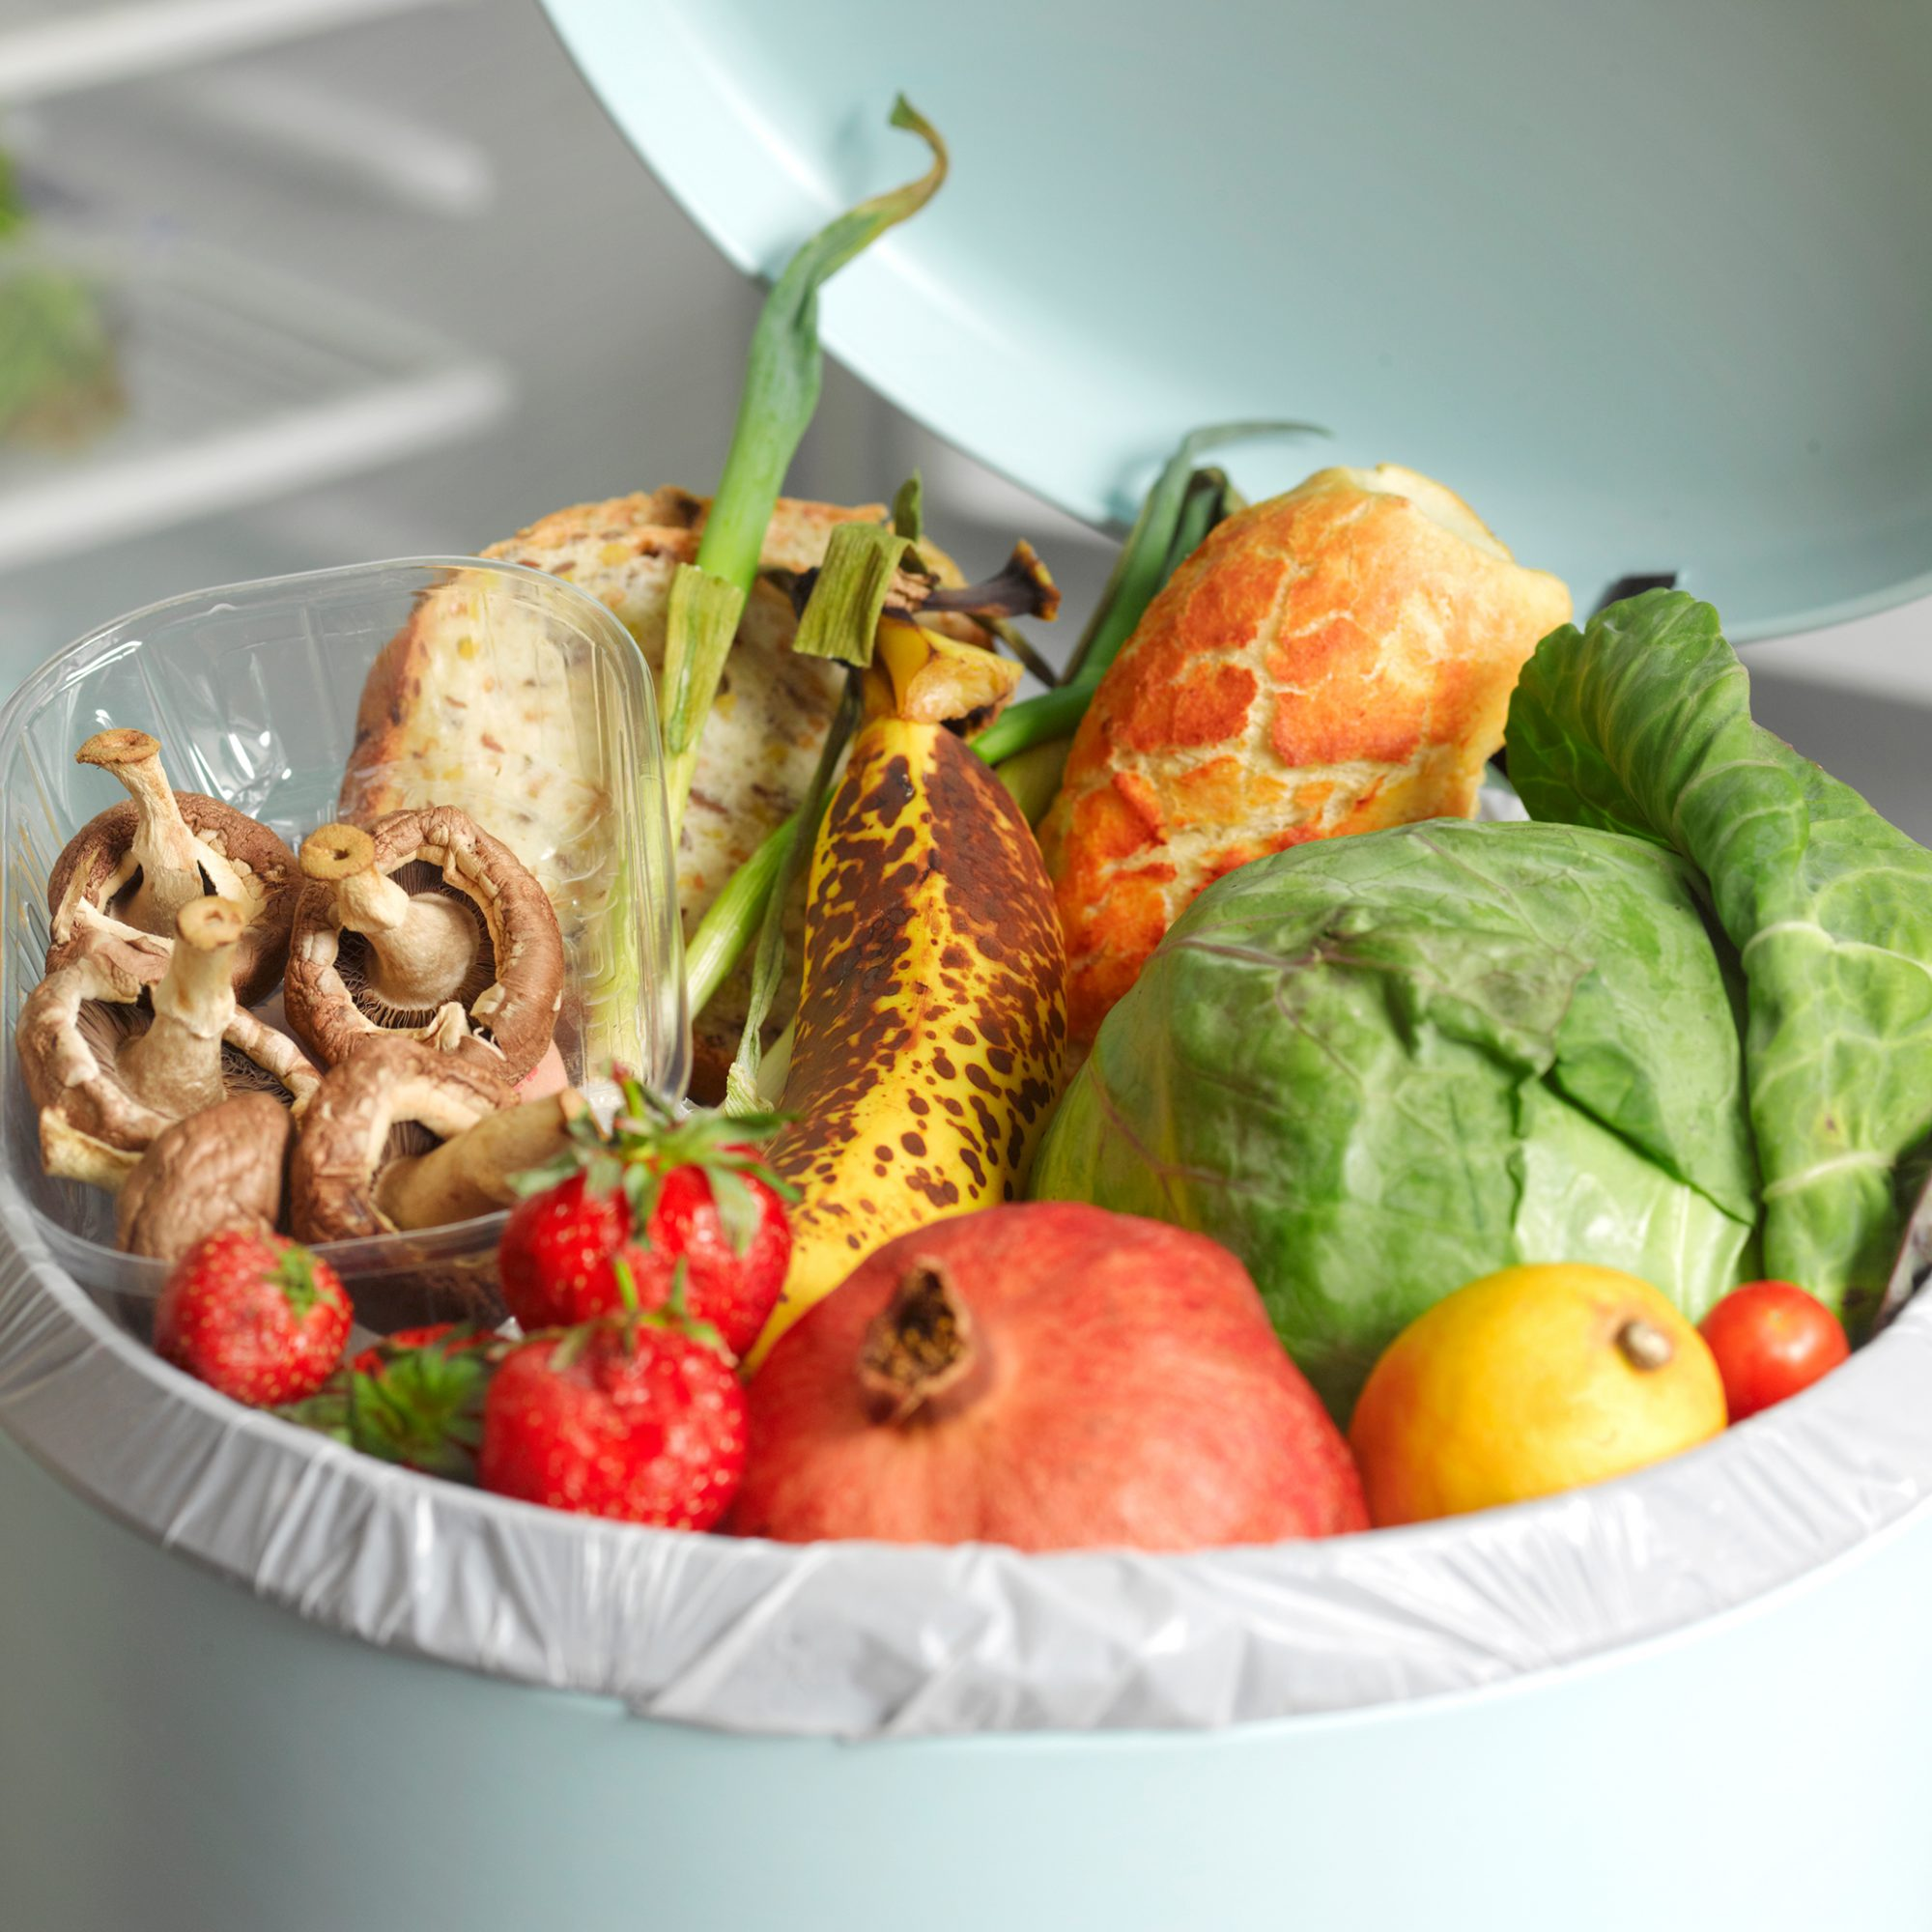 standard-for-counting-food-waste-fwx